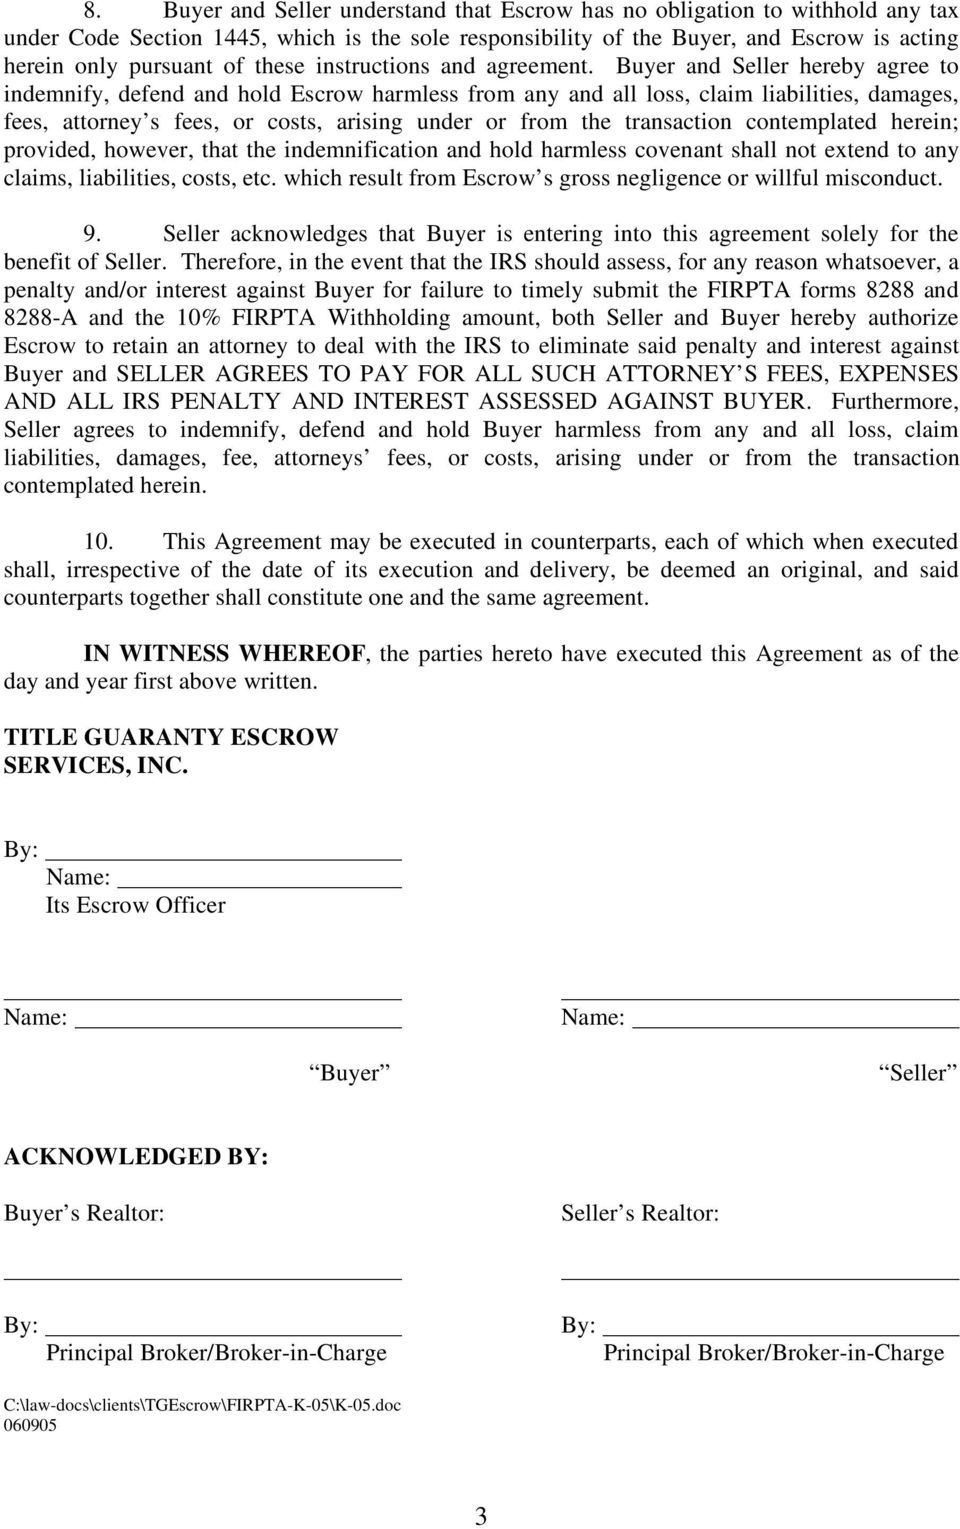 Buyer And Seller Hereby Agree To Indemnify, Defend And Hold Escrow Harmless  From Any And